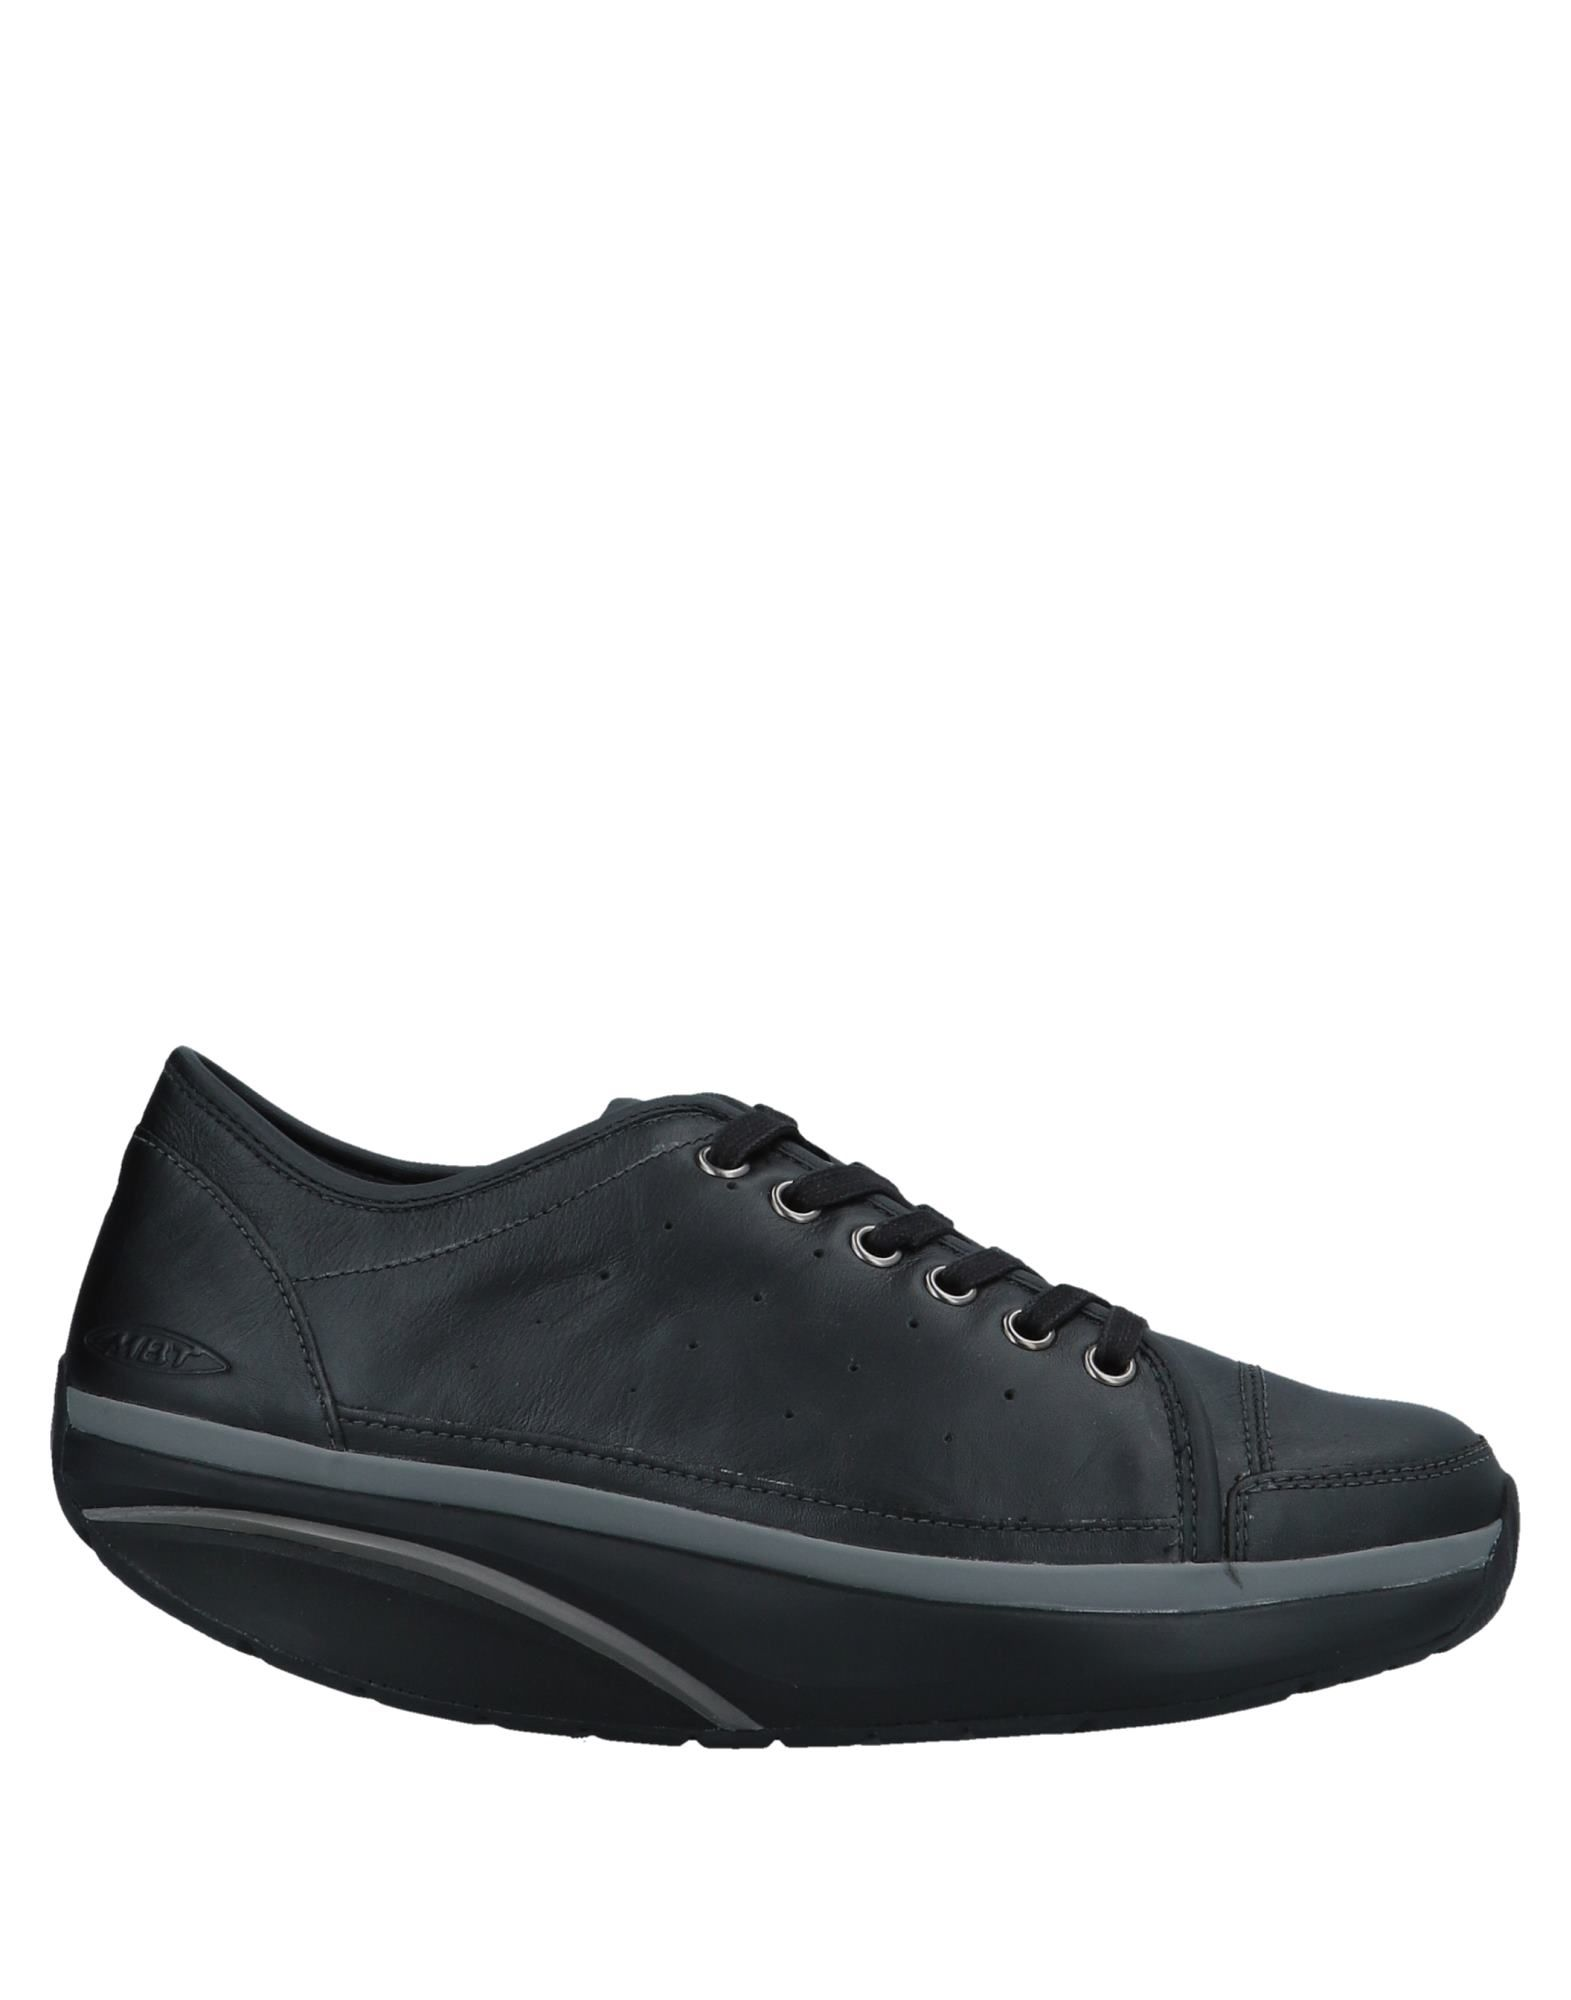 Mbt Sneakers - - - Men Mbt Sneakers online on  United Kingdom - 11555731CJ 1b4368